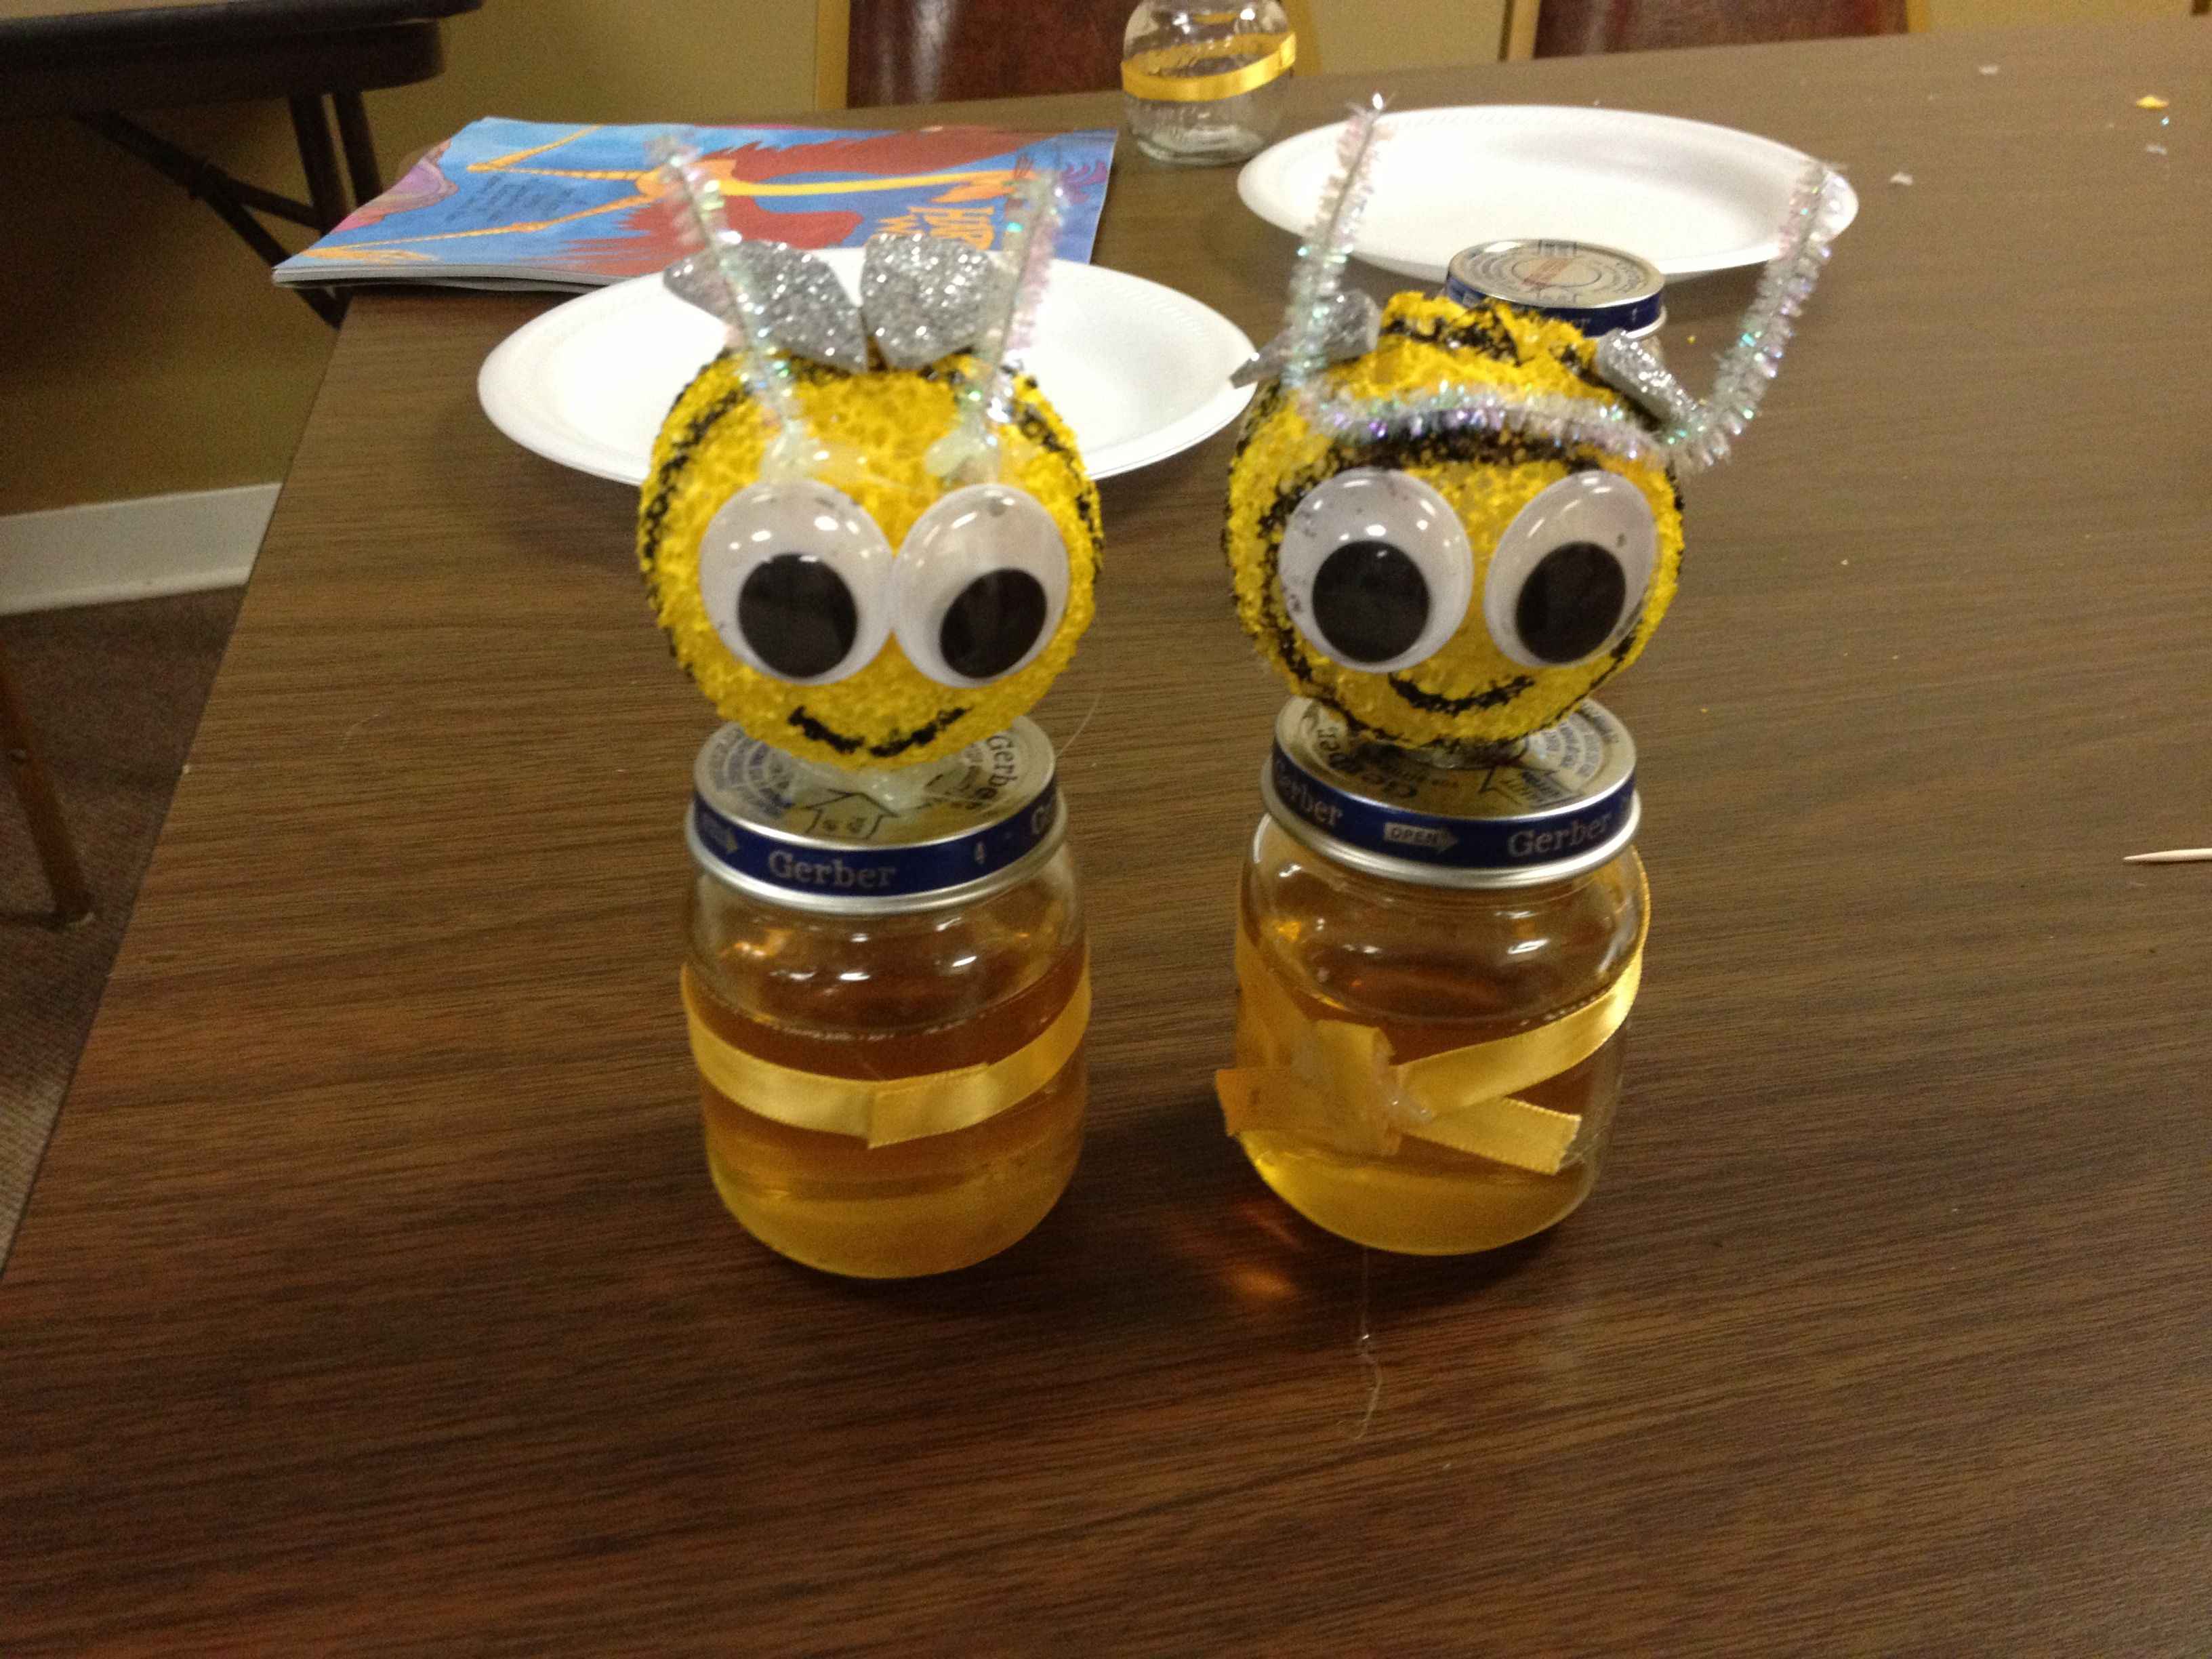 Rosh Hashanah Honeybee Jar Craft Using Styrofoam Balls Paint Pipe Cleaners Glitter Foam Cut